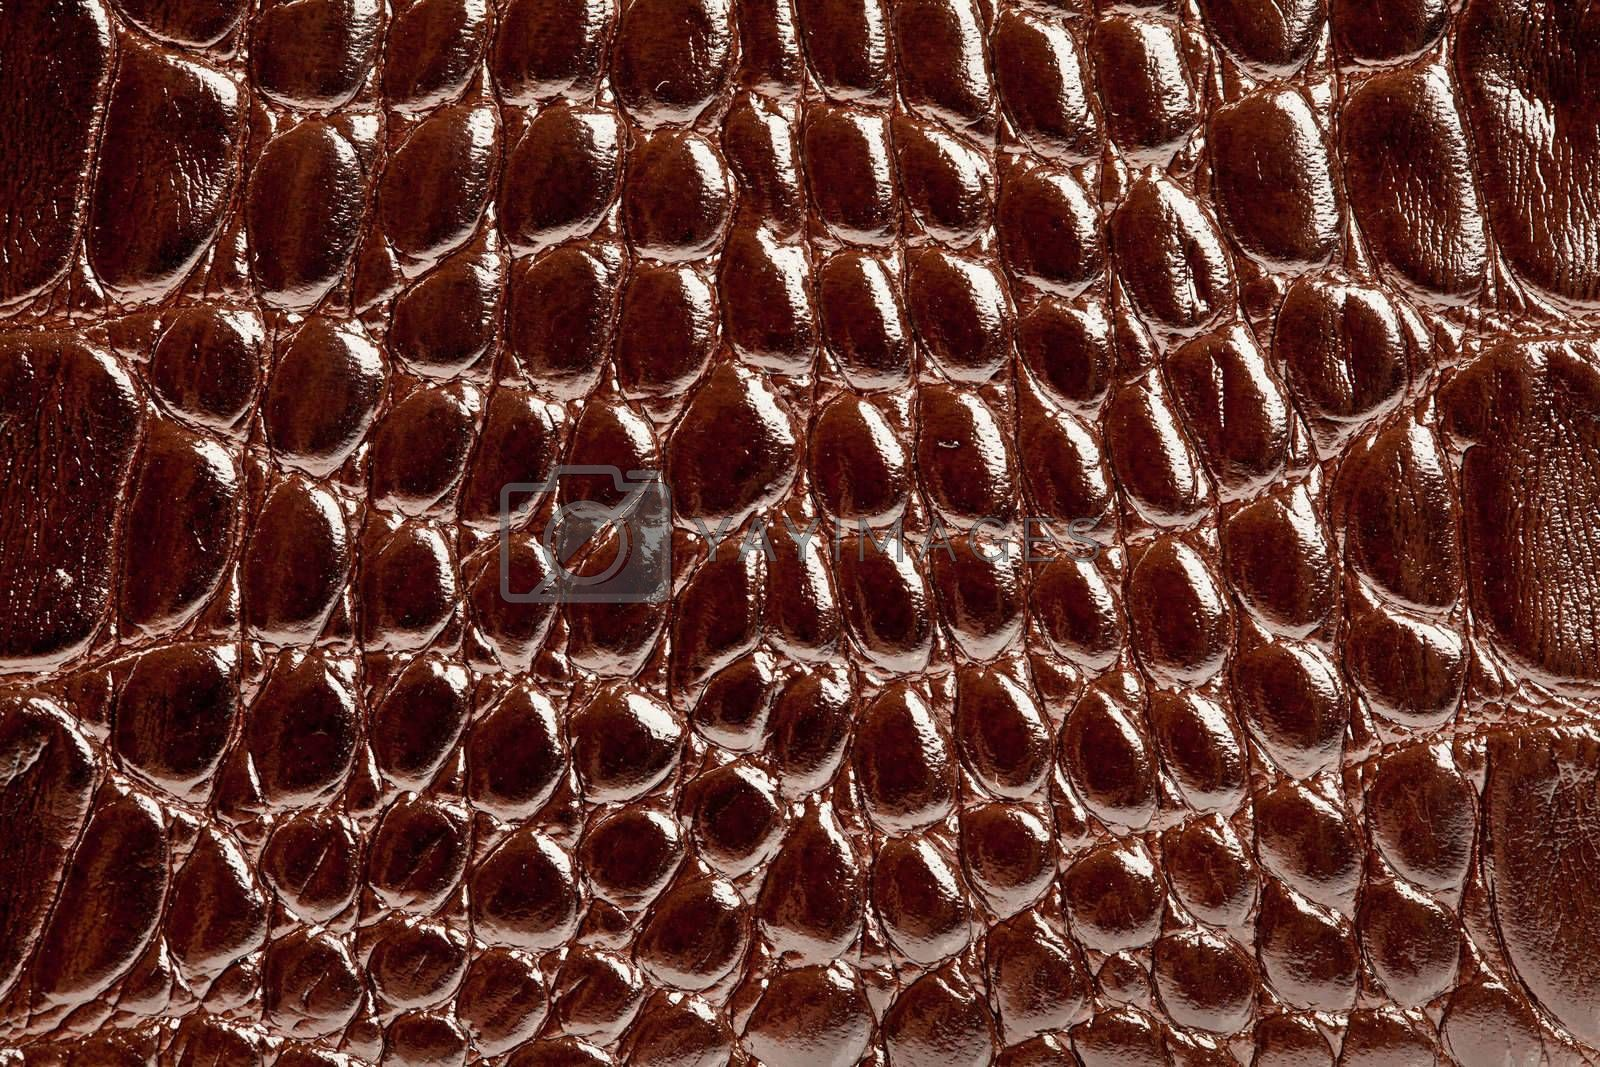 Background, texture of a skin of a crocodile close up